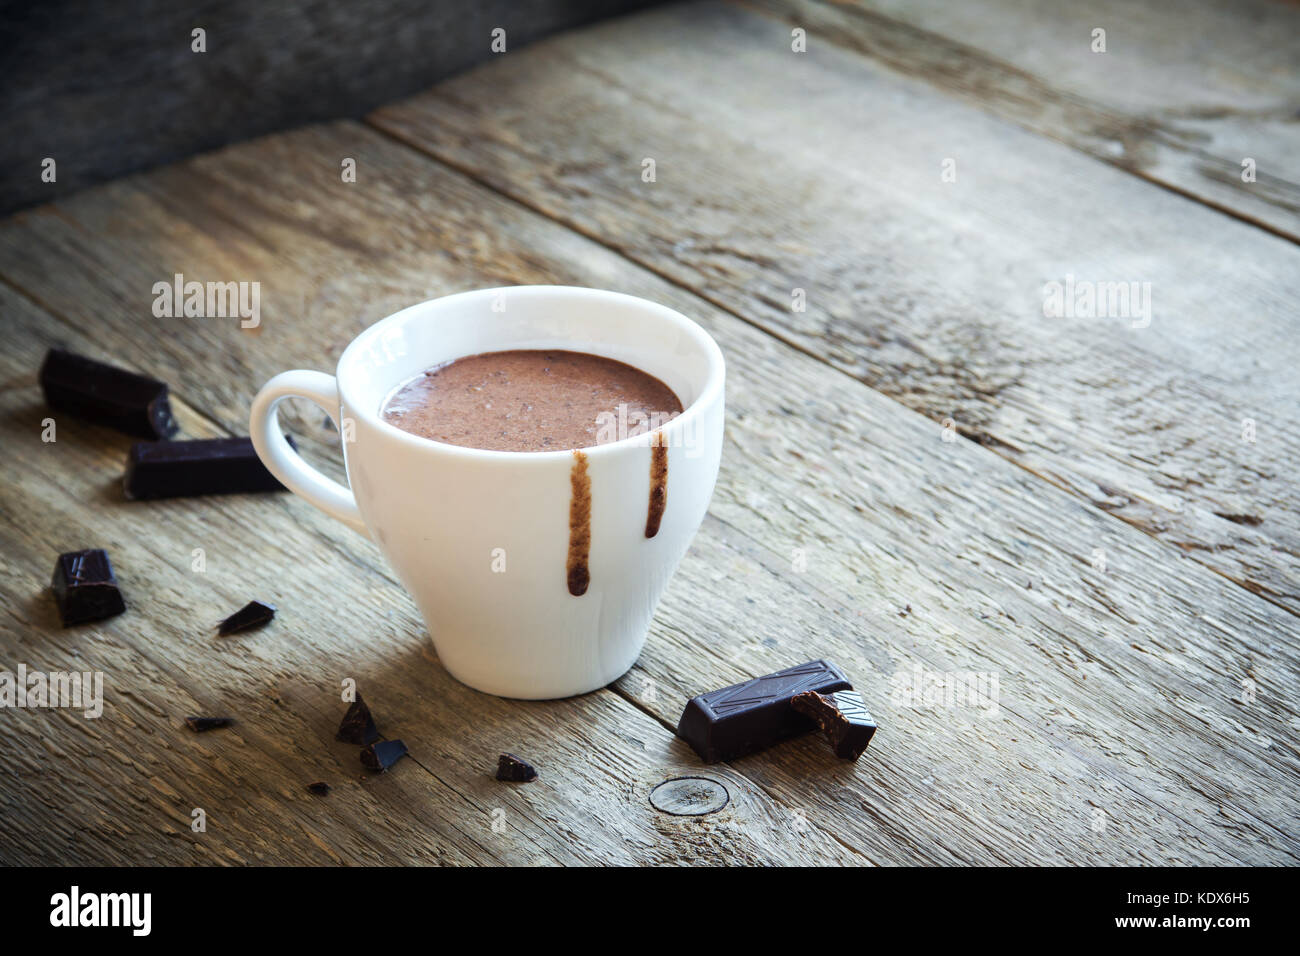 Hot Chocolate and chocolate pieces over rustic wooden background. Homemade Hot Chocolate Drink for Christmas and - Stock Image